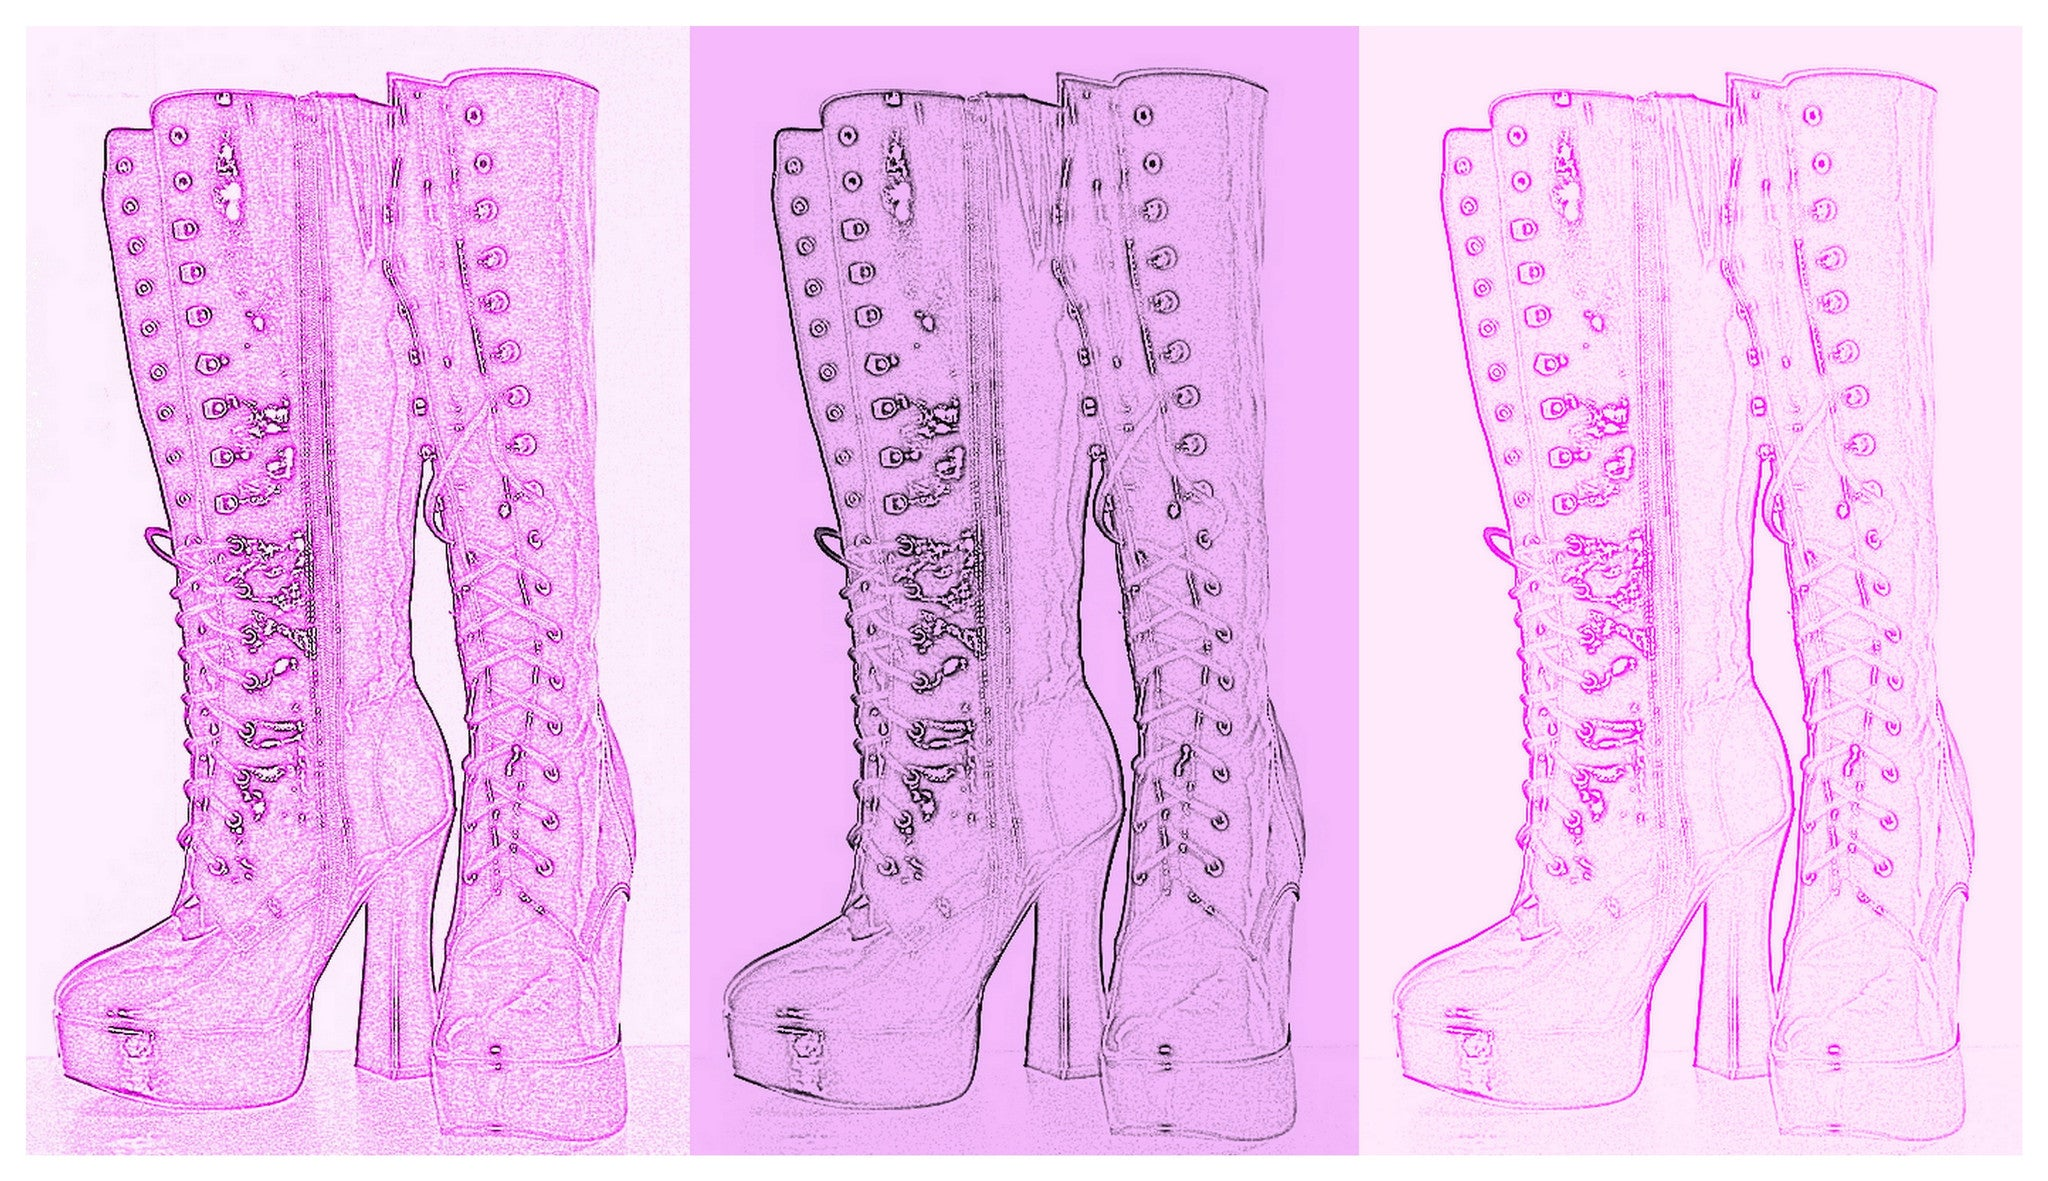 Goth Boots #2 [Limited Edition 1/10] by Alaina aka Suga Lane